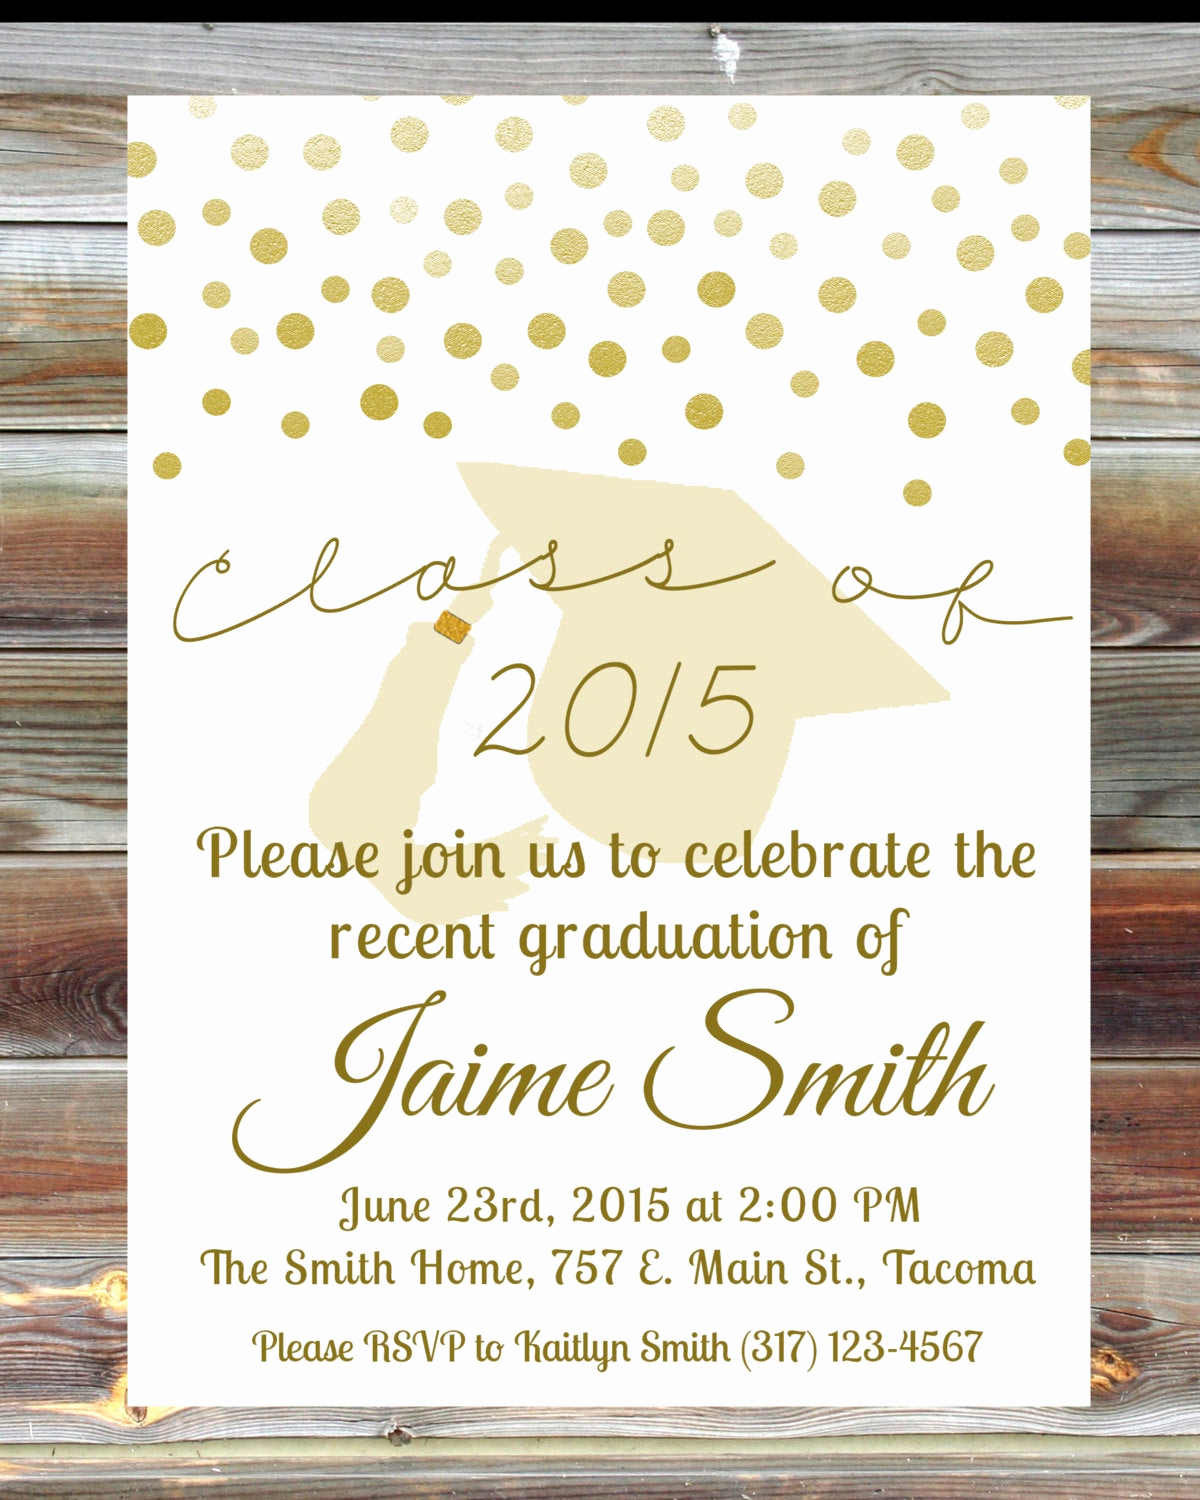 Graduation Open House Invitation Templates Beautiful Gold Graduation Open House Invitation Custom Graduation